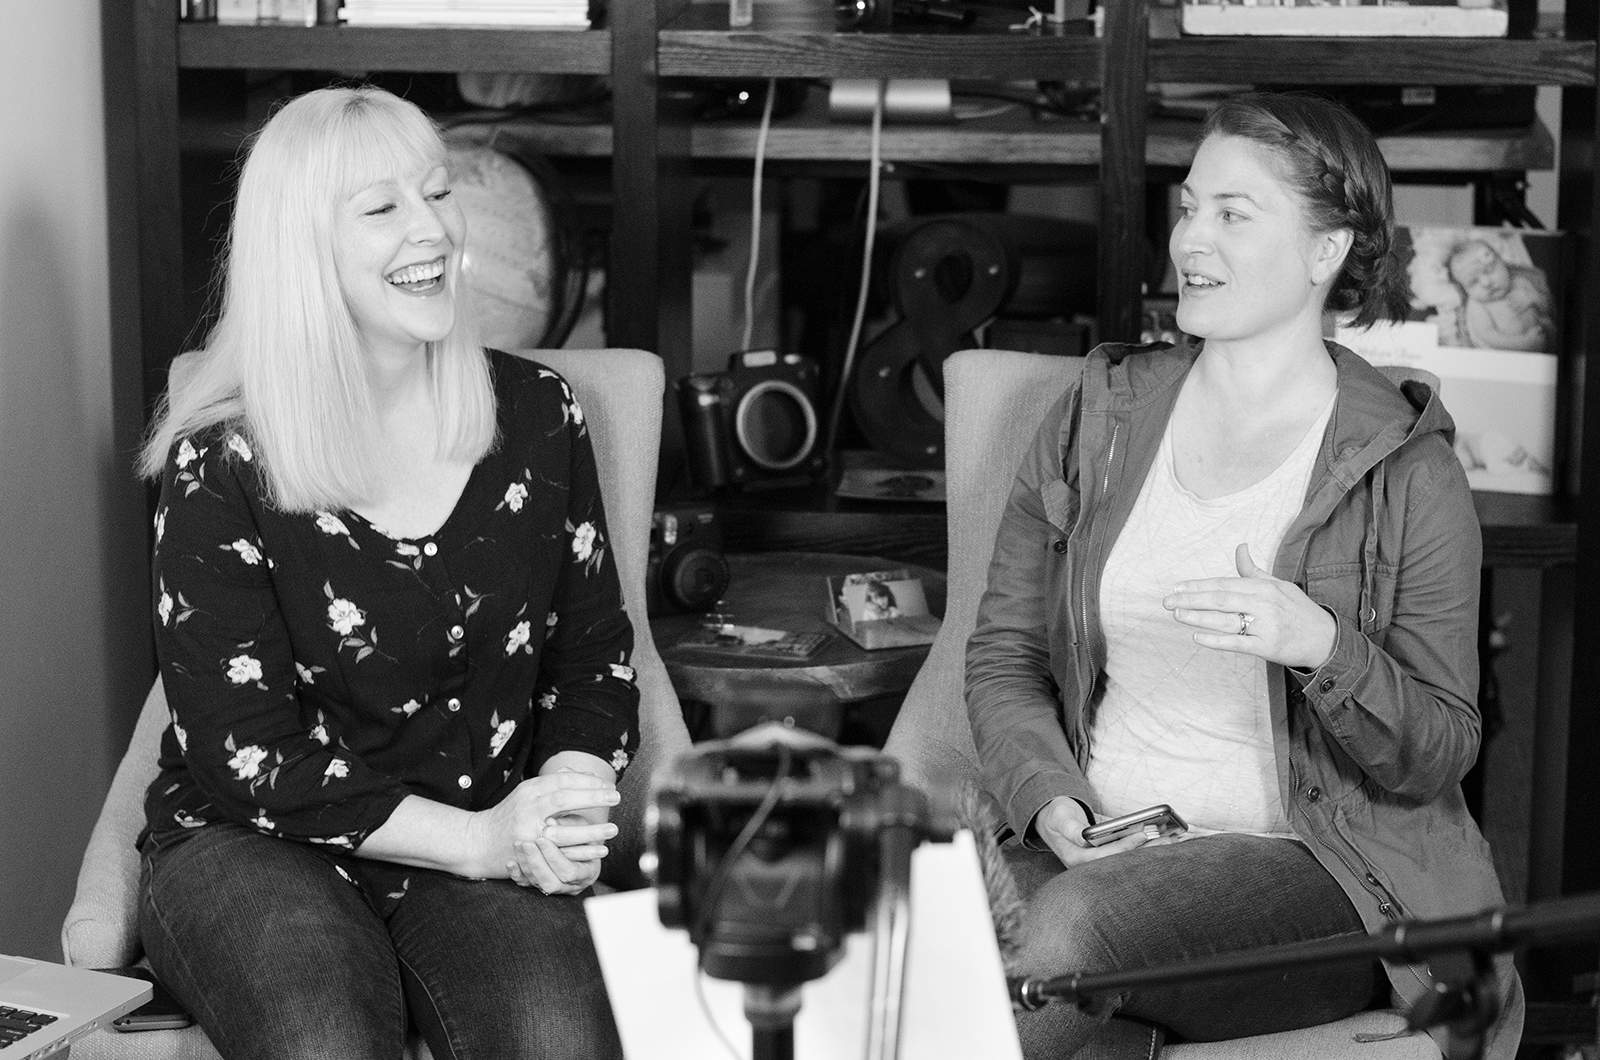 Theresa (left) and Rebecca Moran of WV Motion Works host a Facebook Live event.